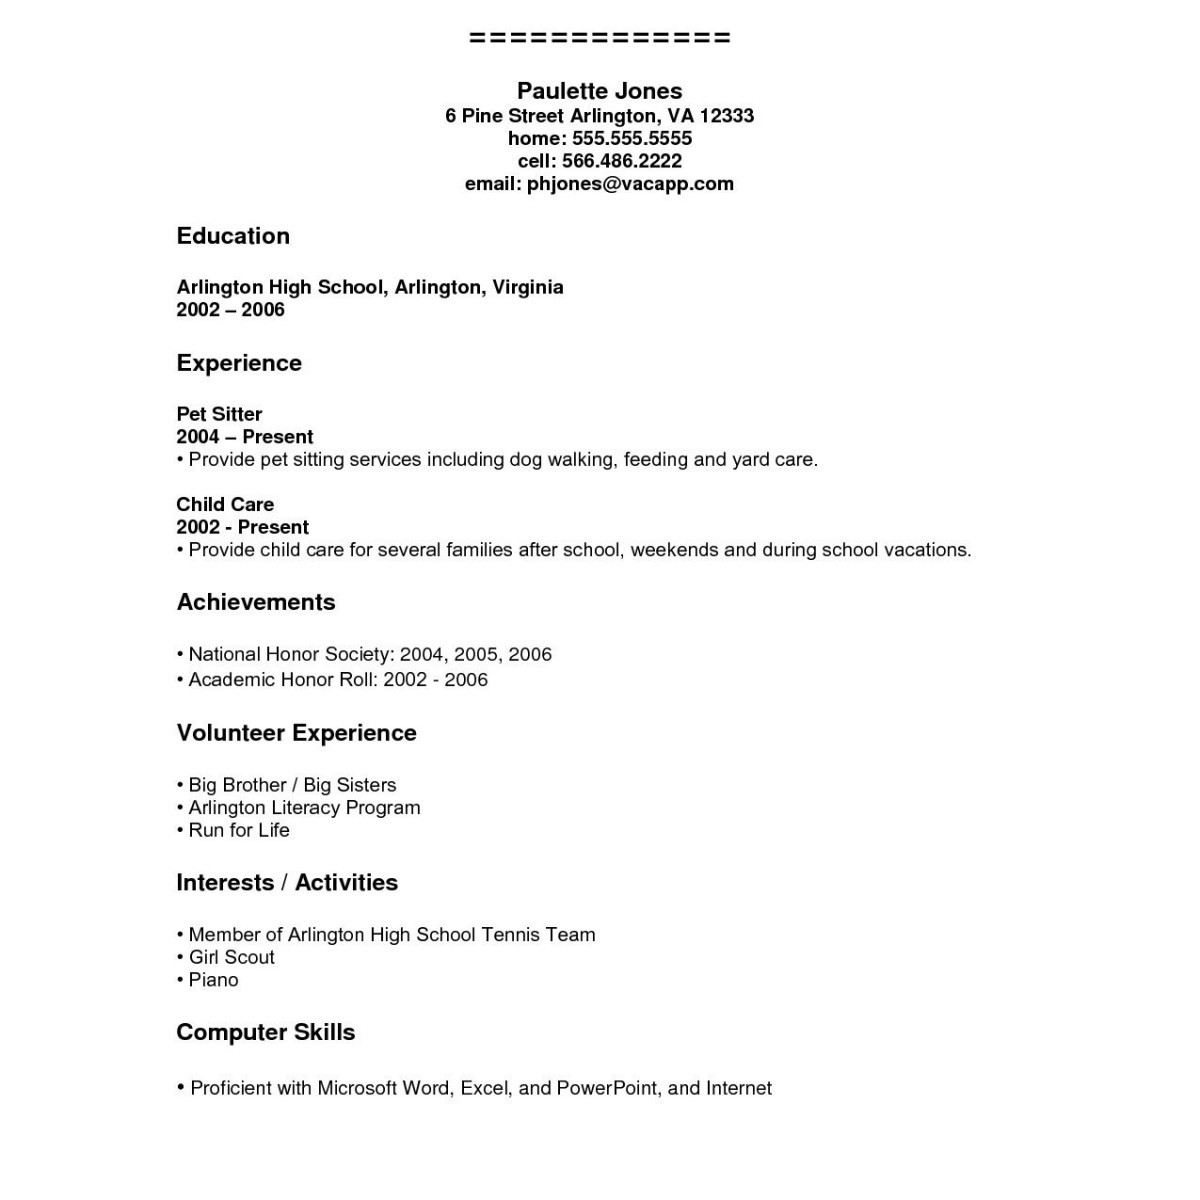 Student Resume Builder - Create Resume for High School Student Pretty Resume Builder for